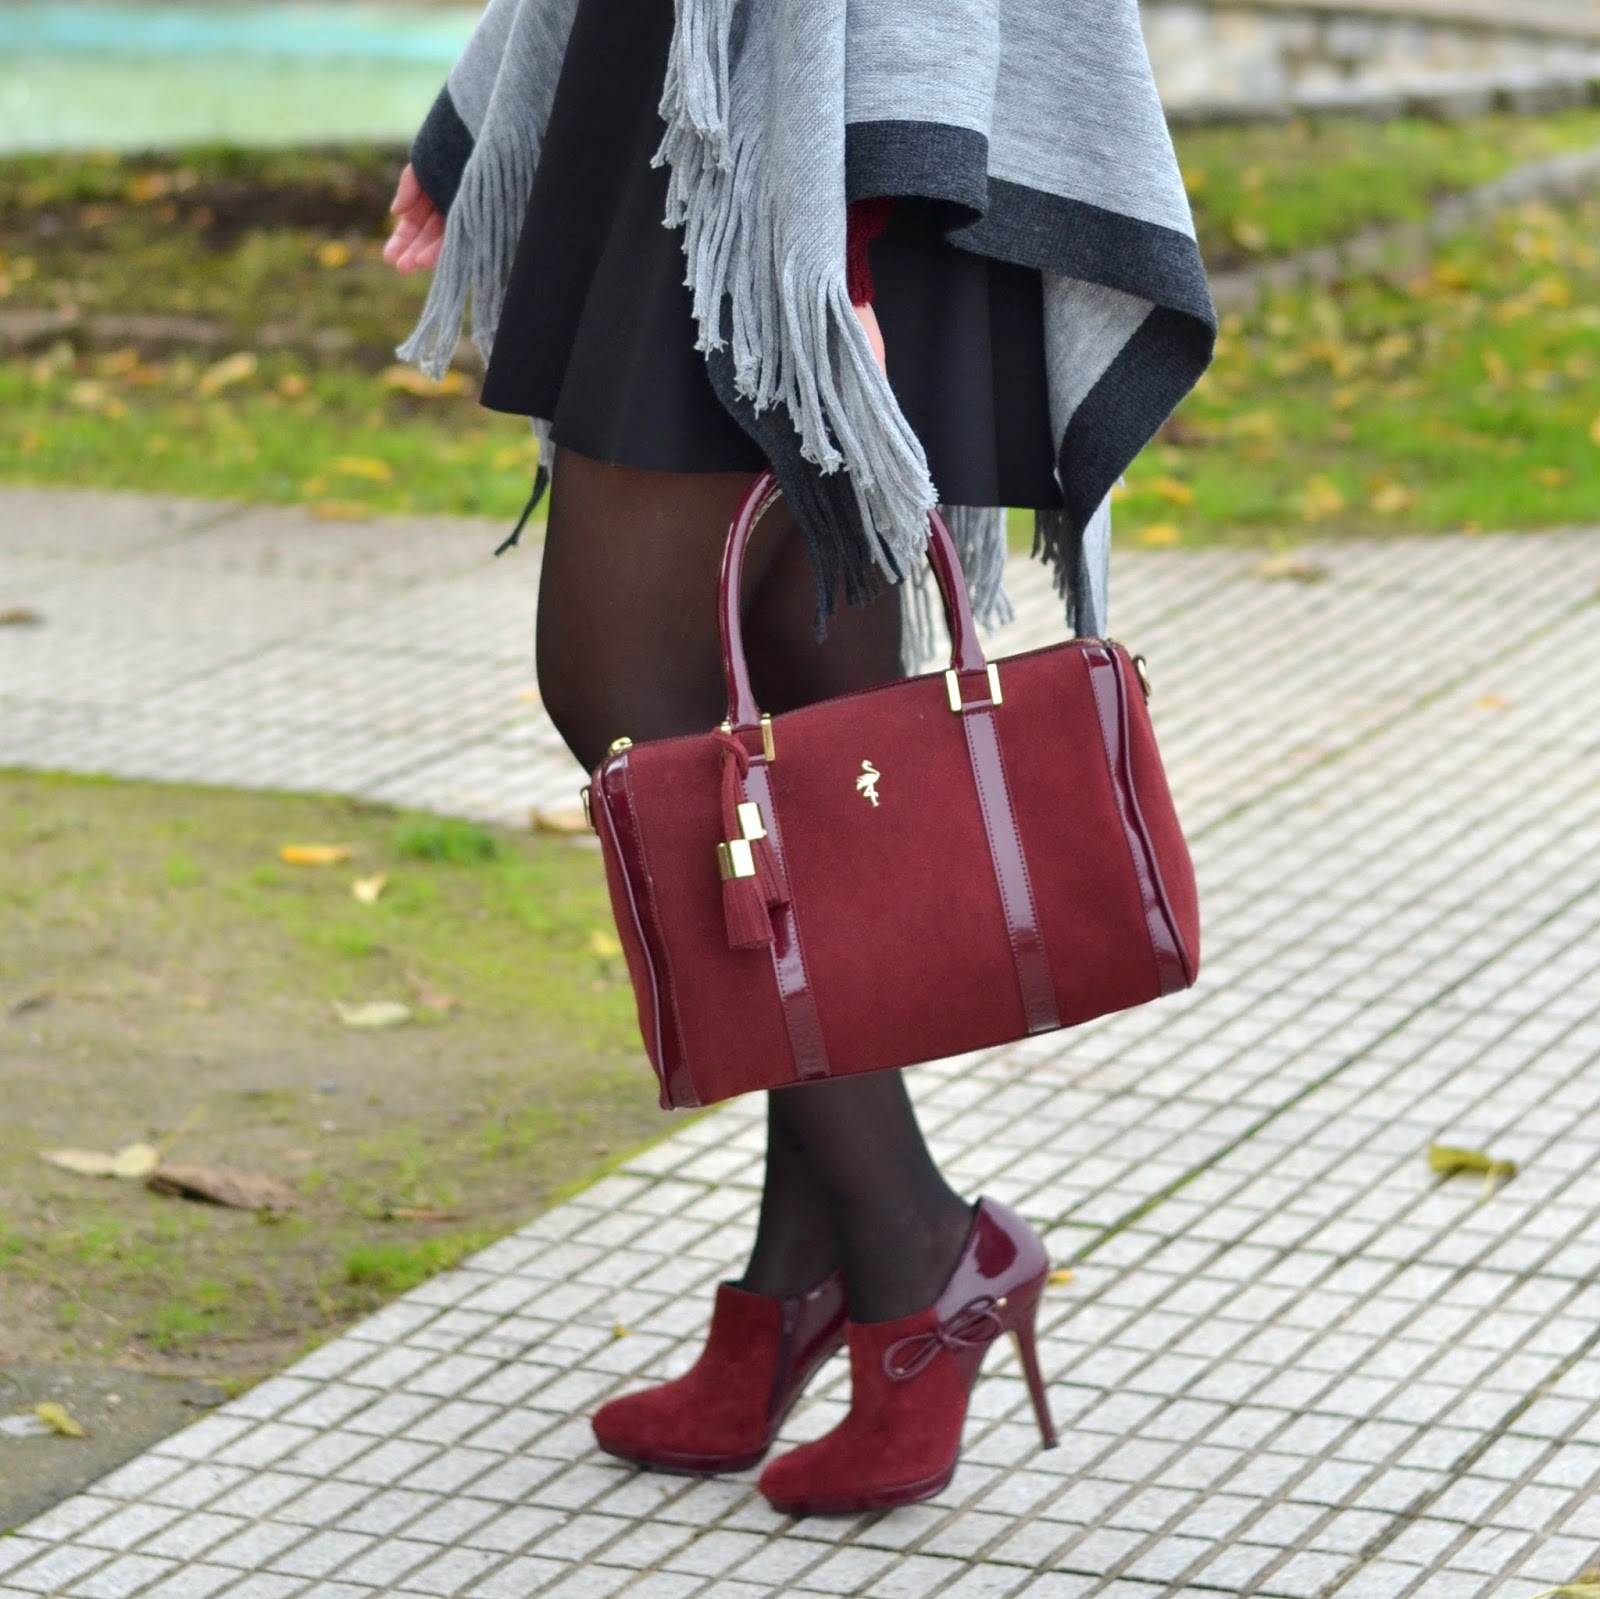 burgundy, menbur, heels, booties, bag